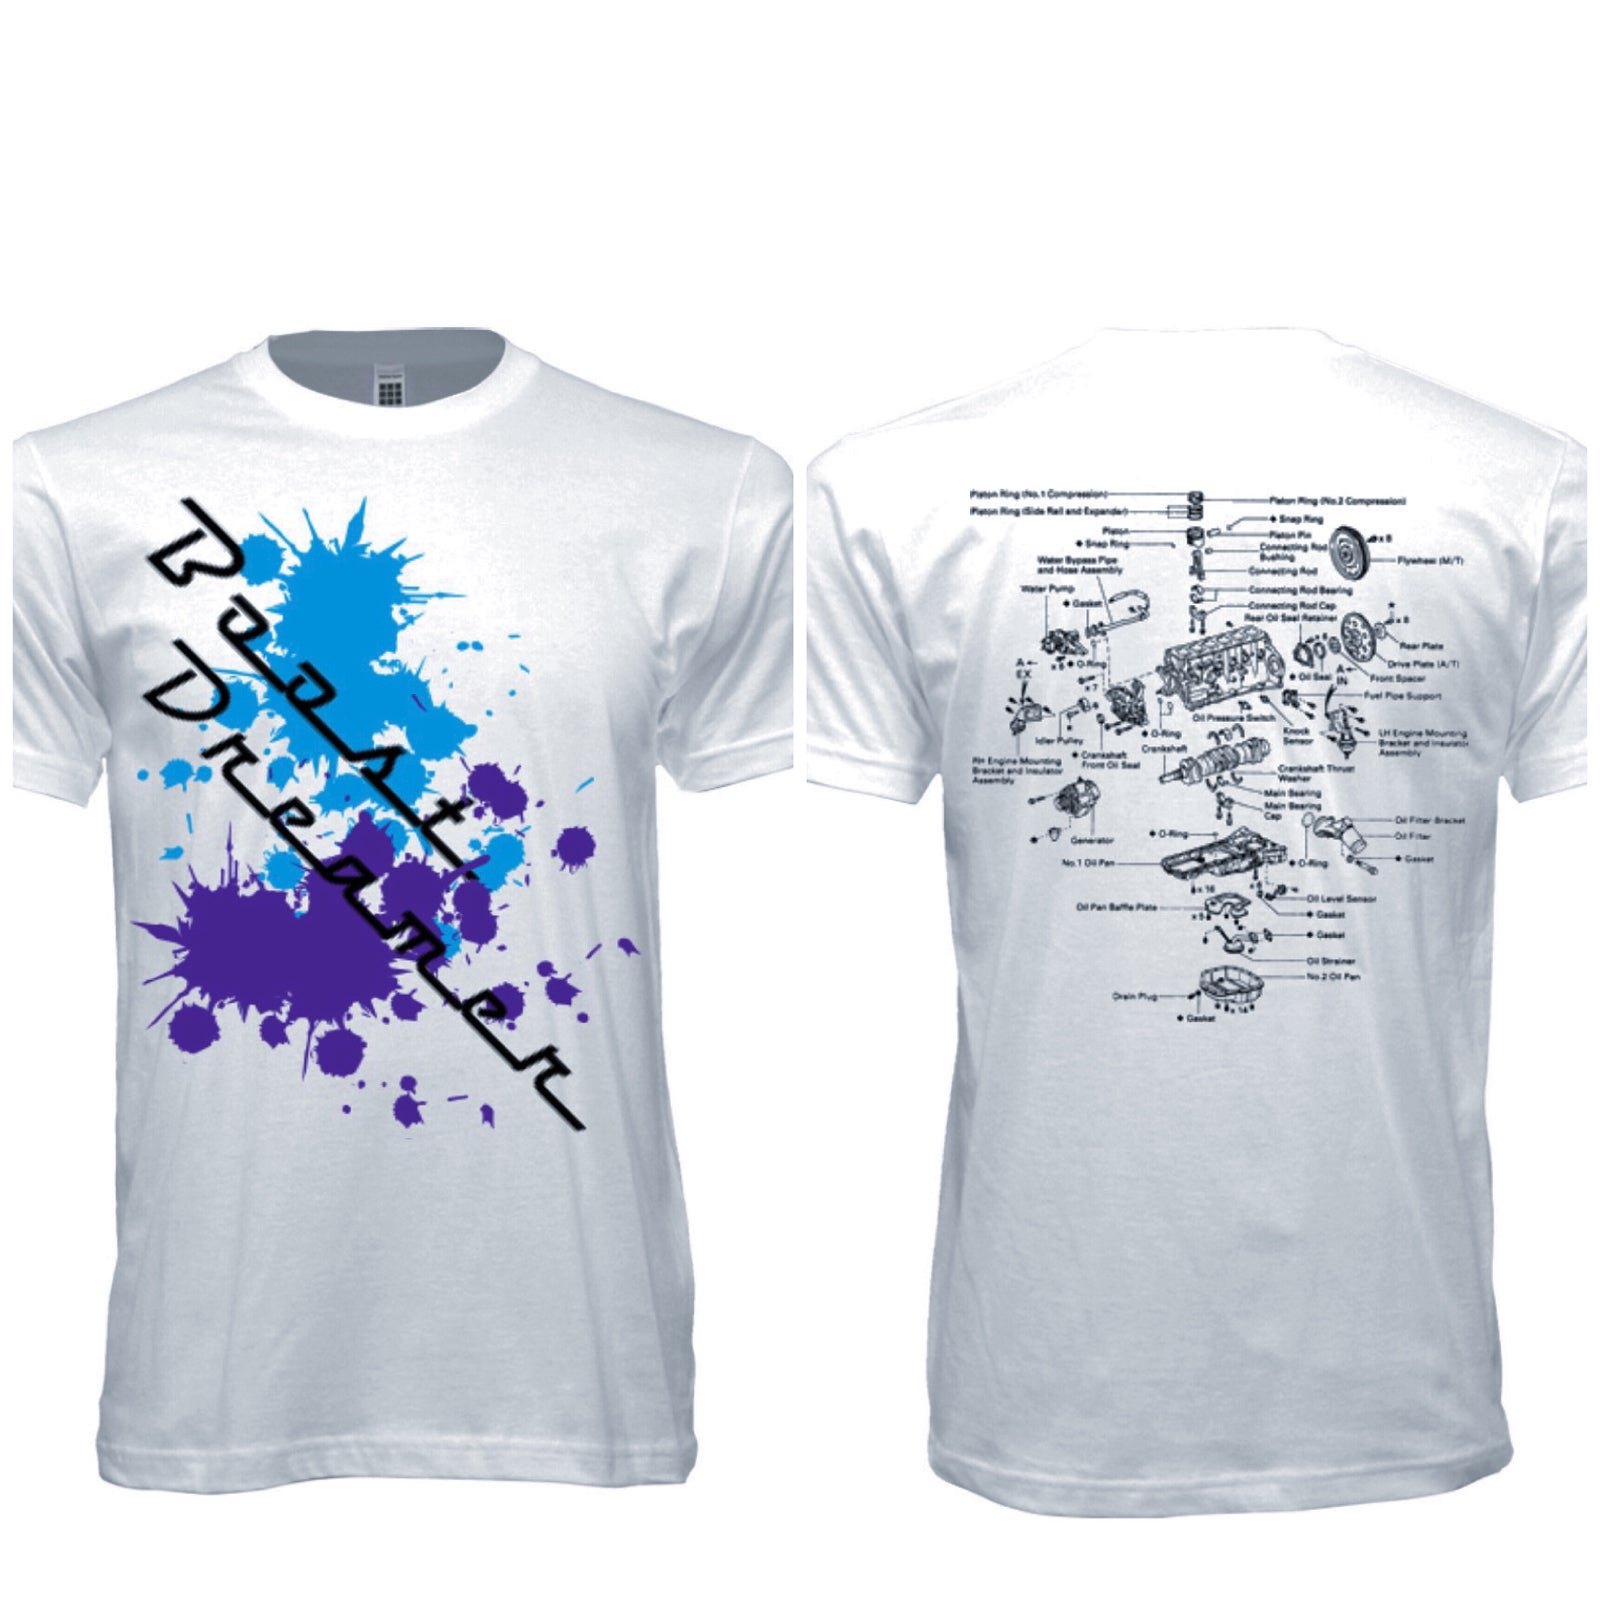 hight resolution of image of boost dreamer 2jz diagram t shirt